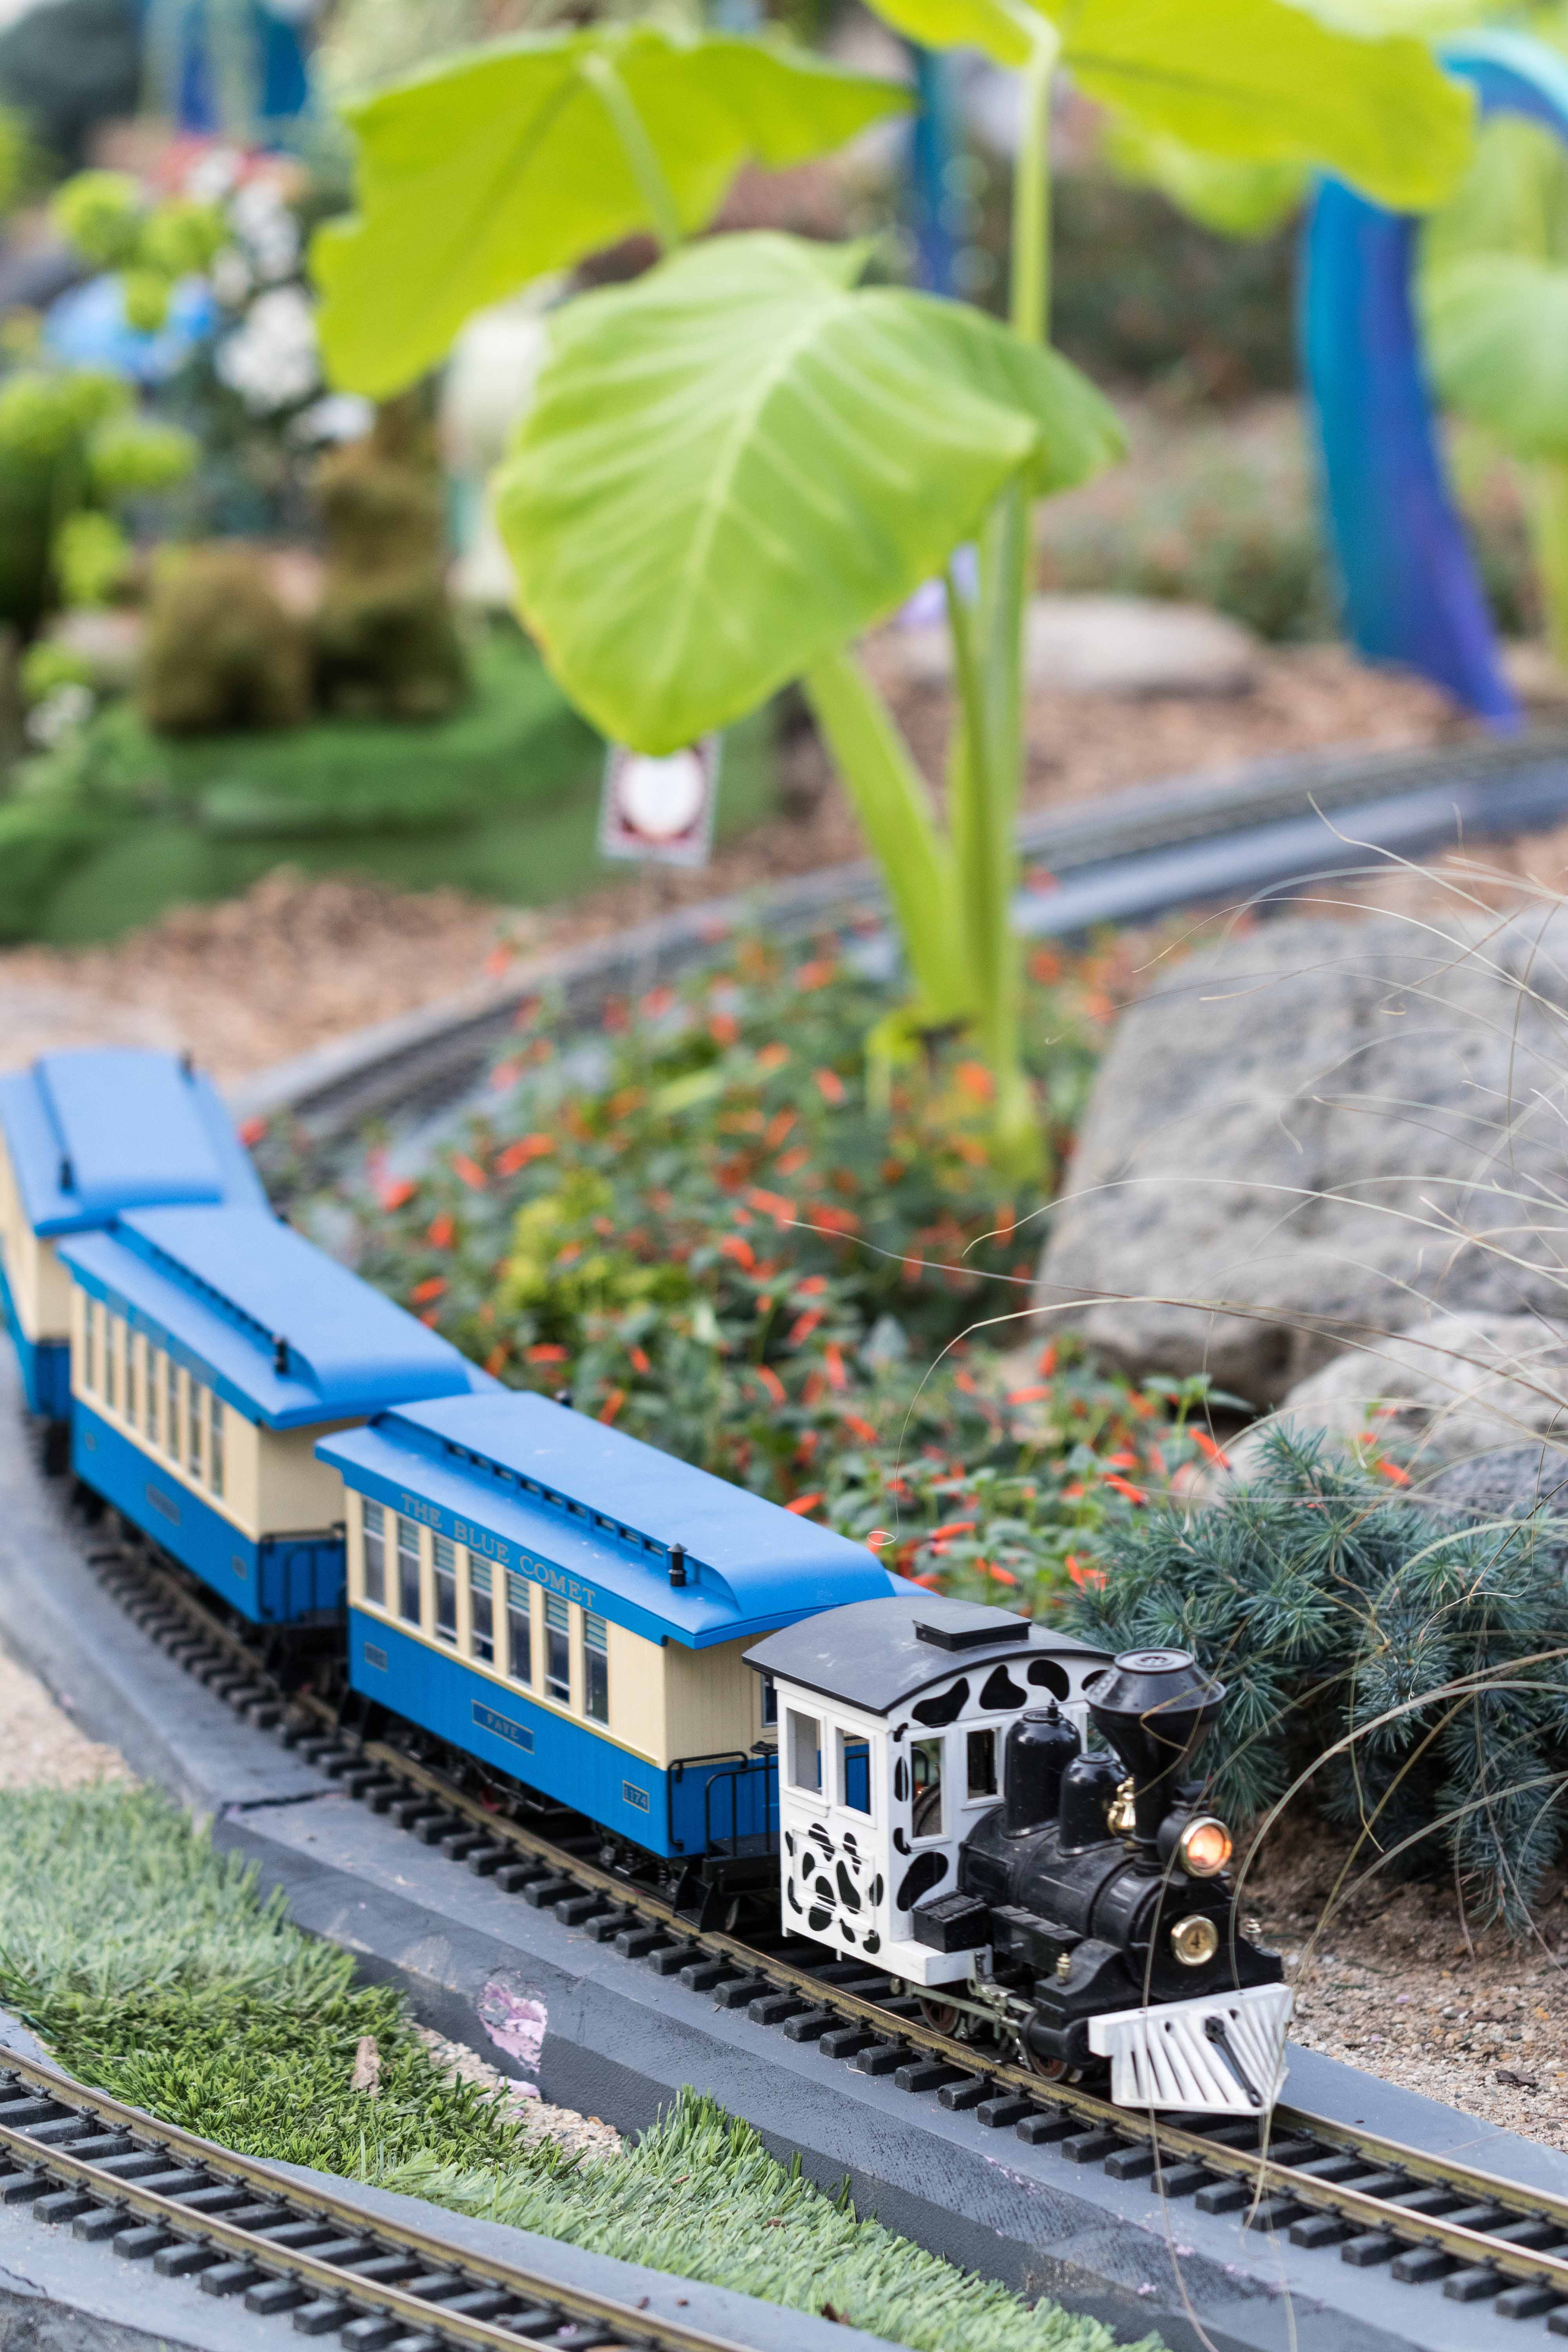 Railroad to Wonderland Garden Train Show at the Domes | http://www.roseclearfield.com